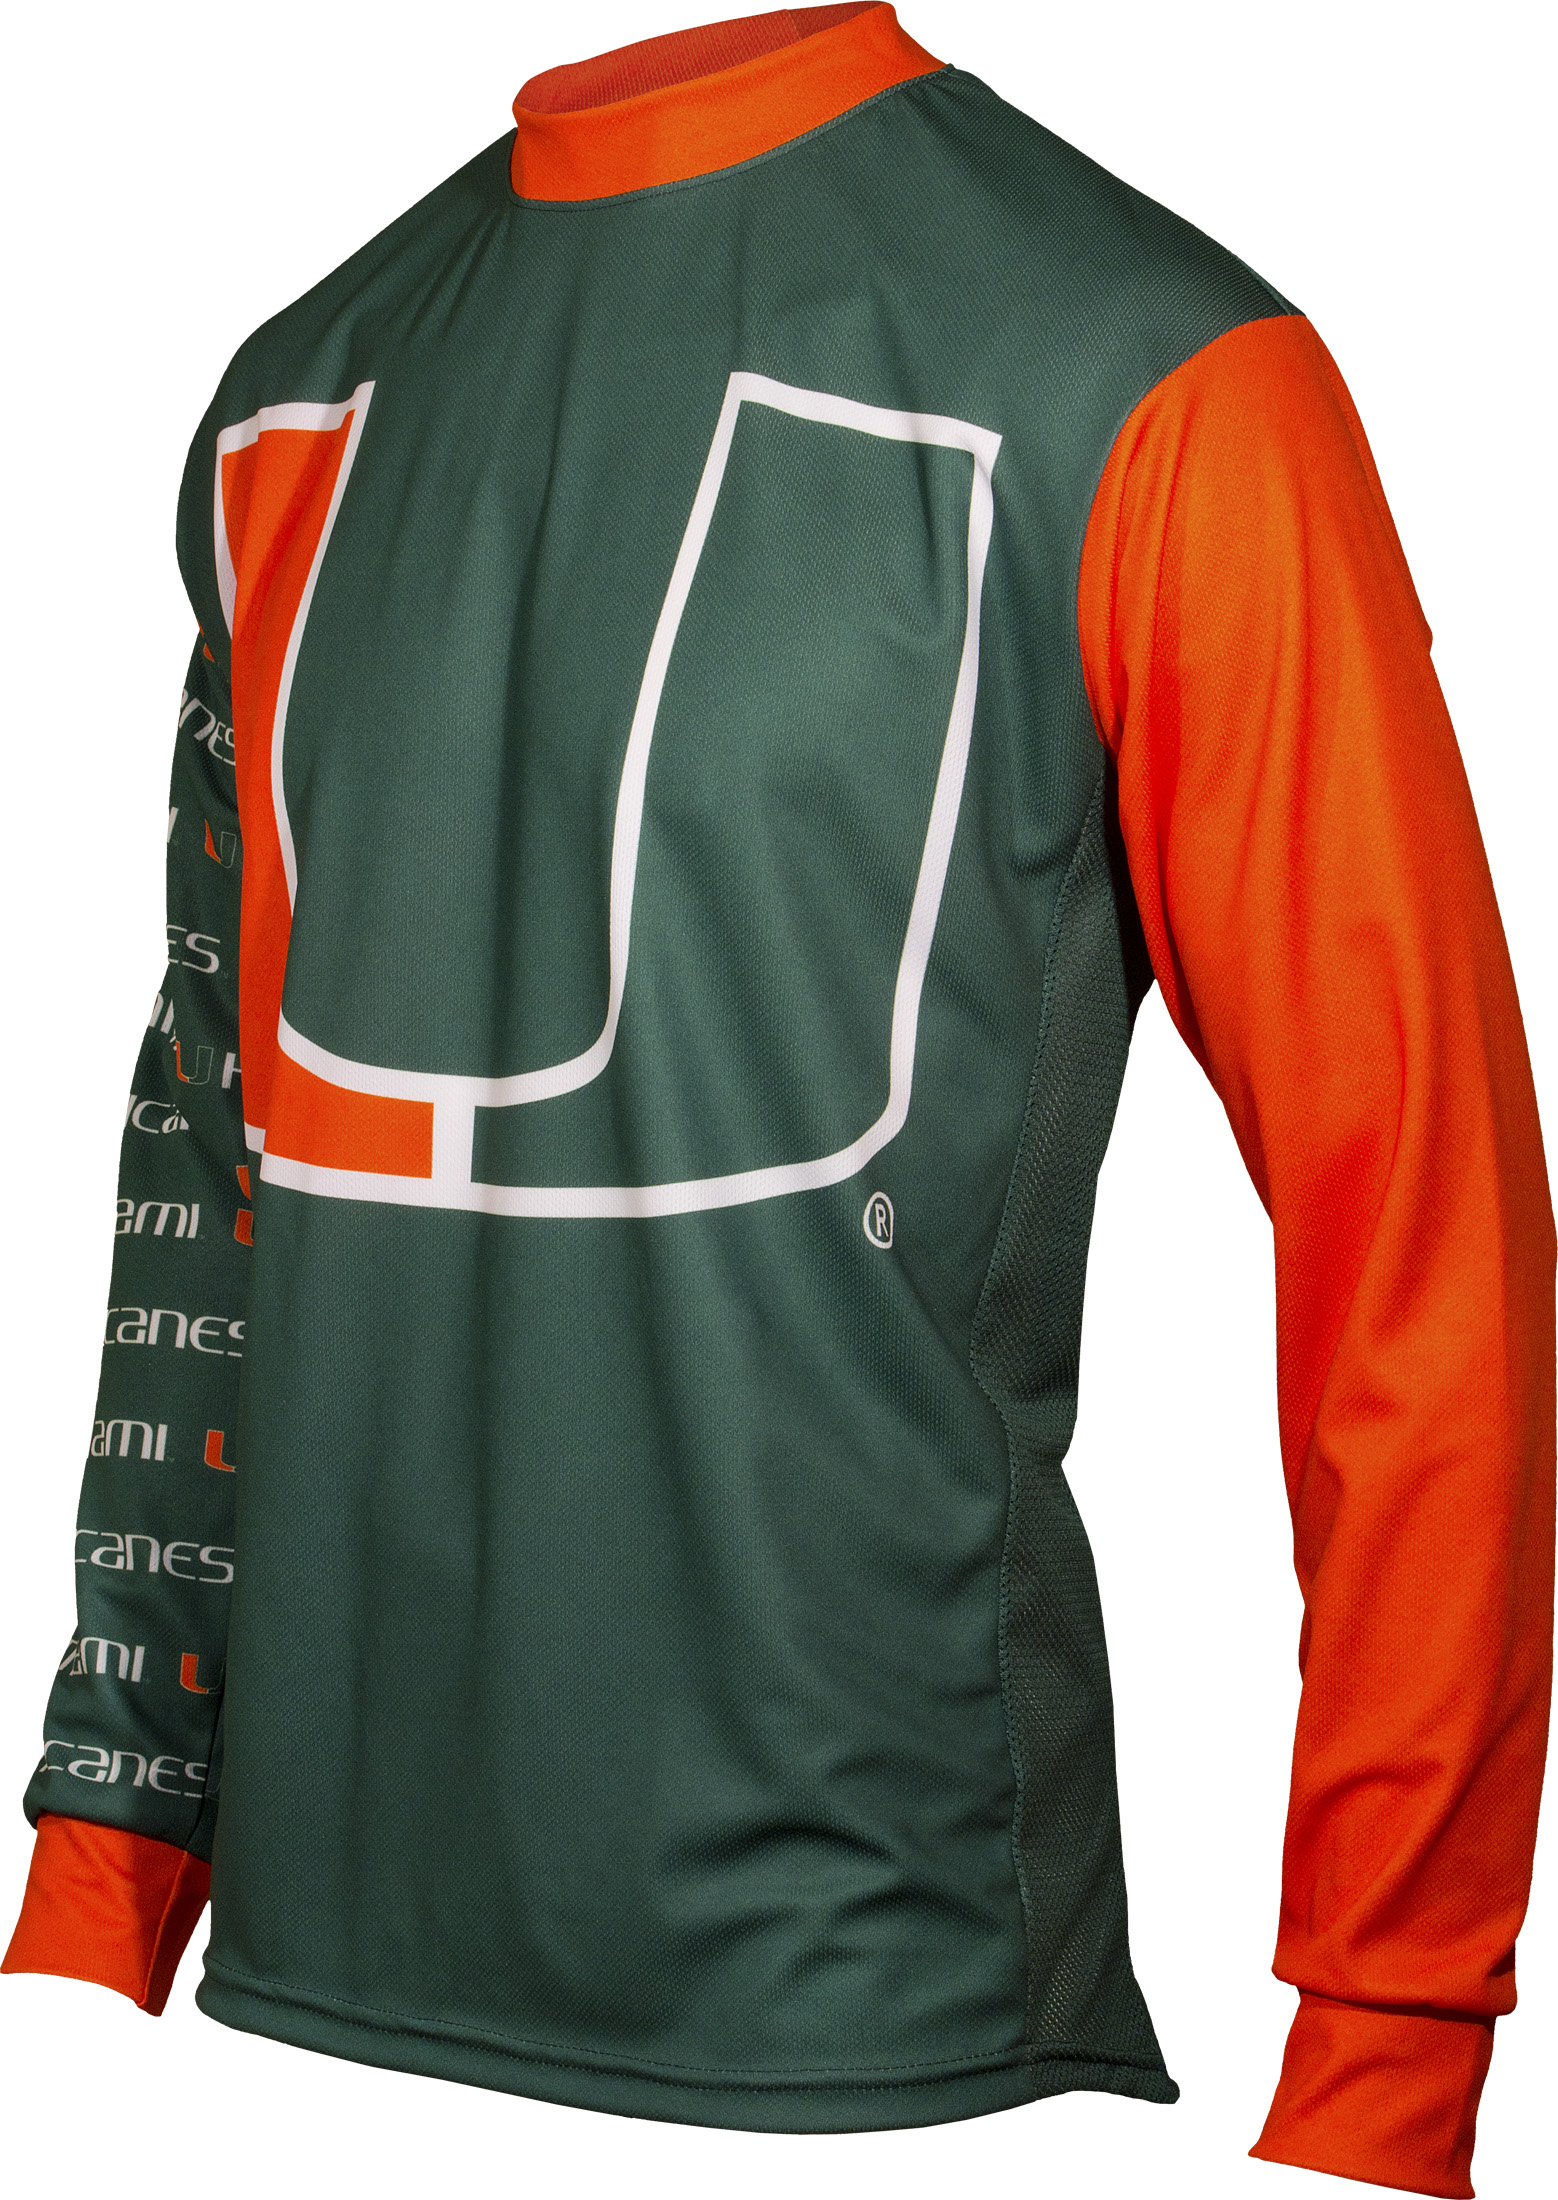 University of Miami Hurricanes Long Sleeve MTB Cycling Jersey